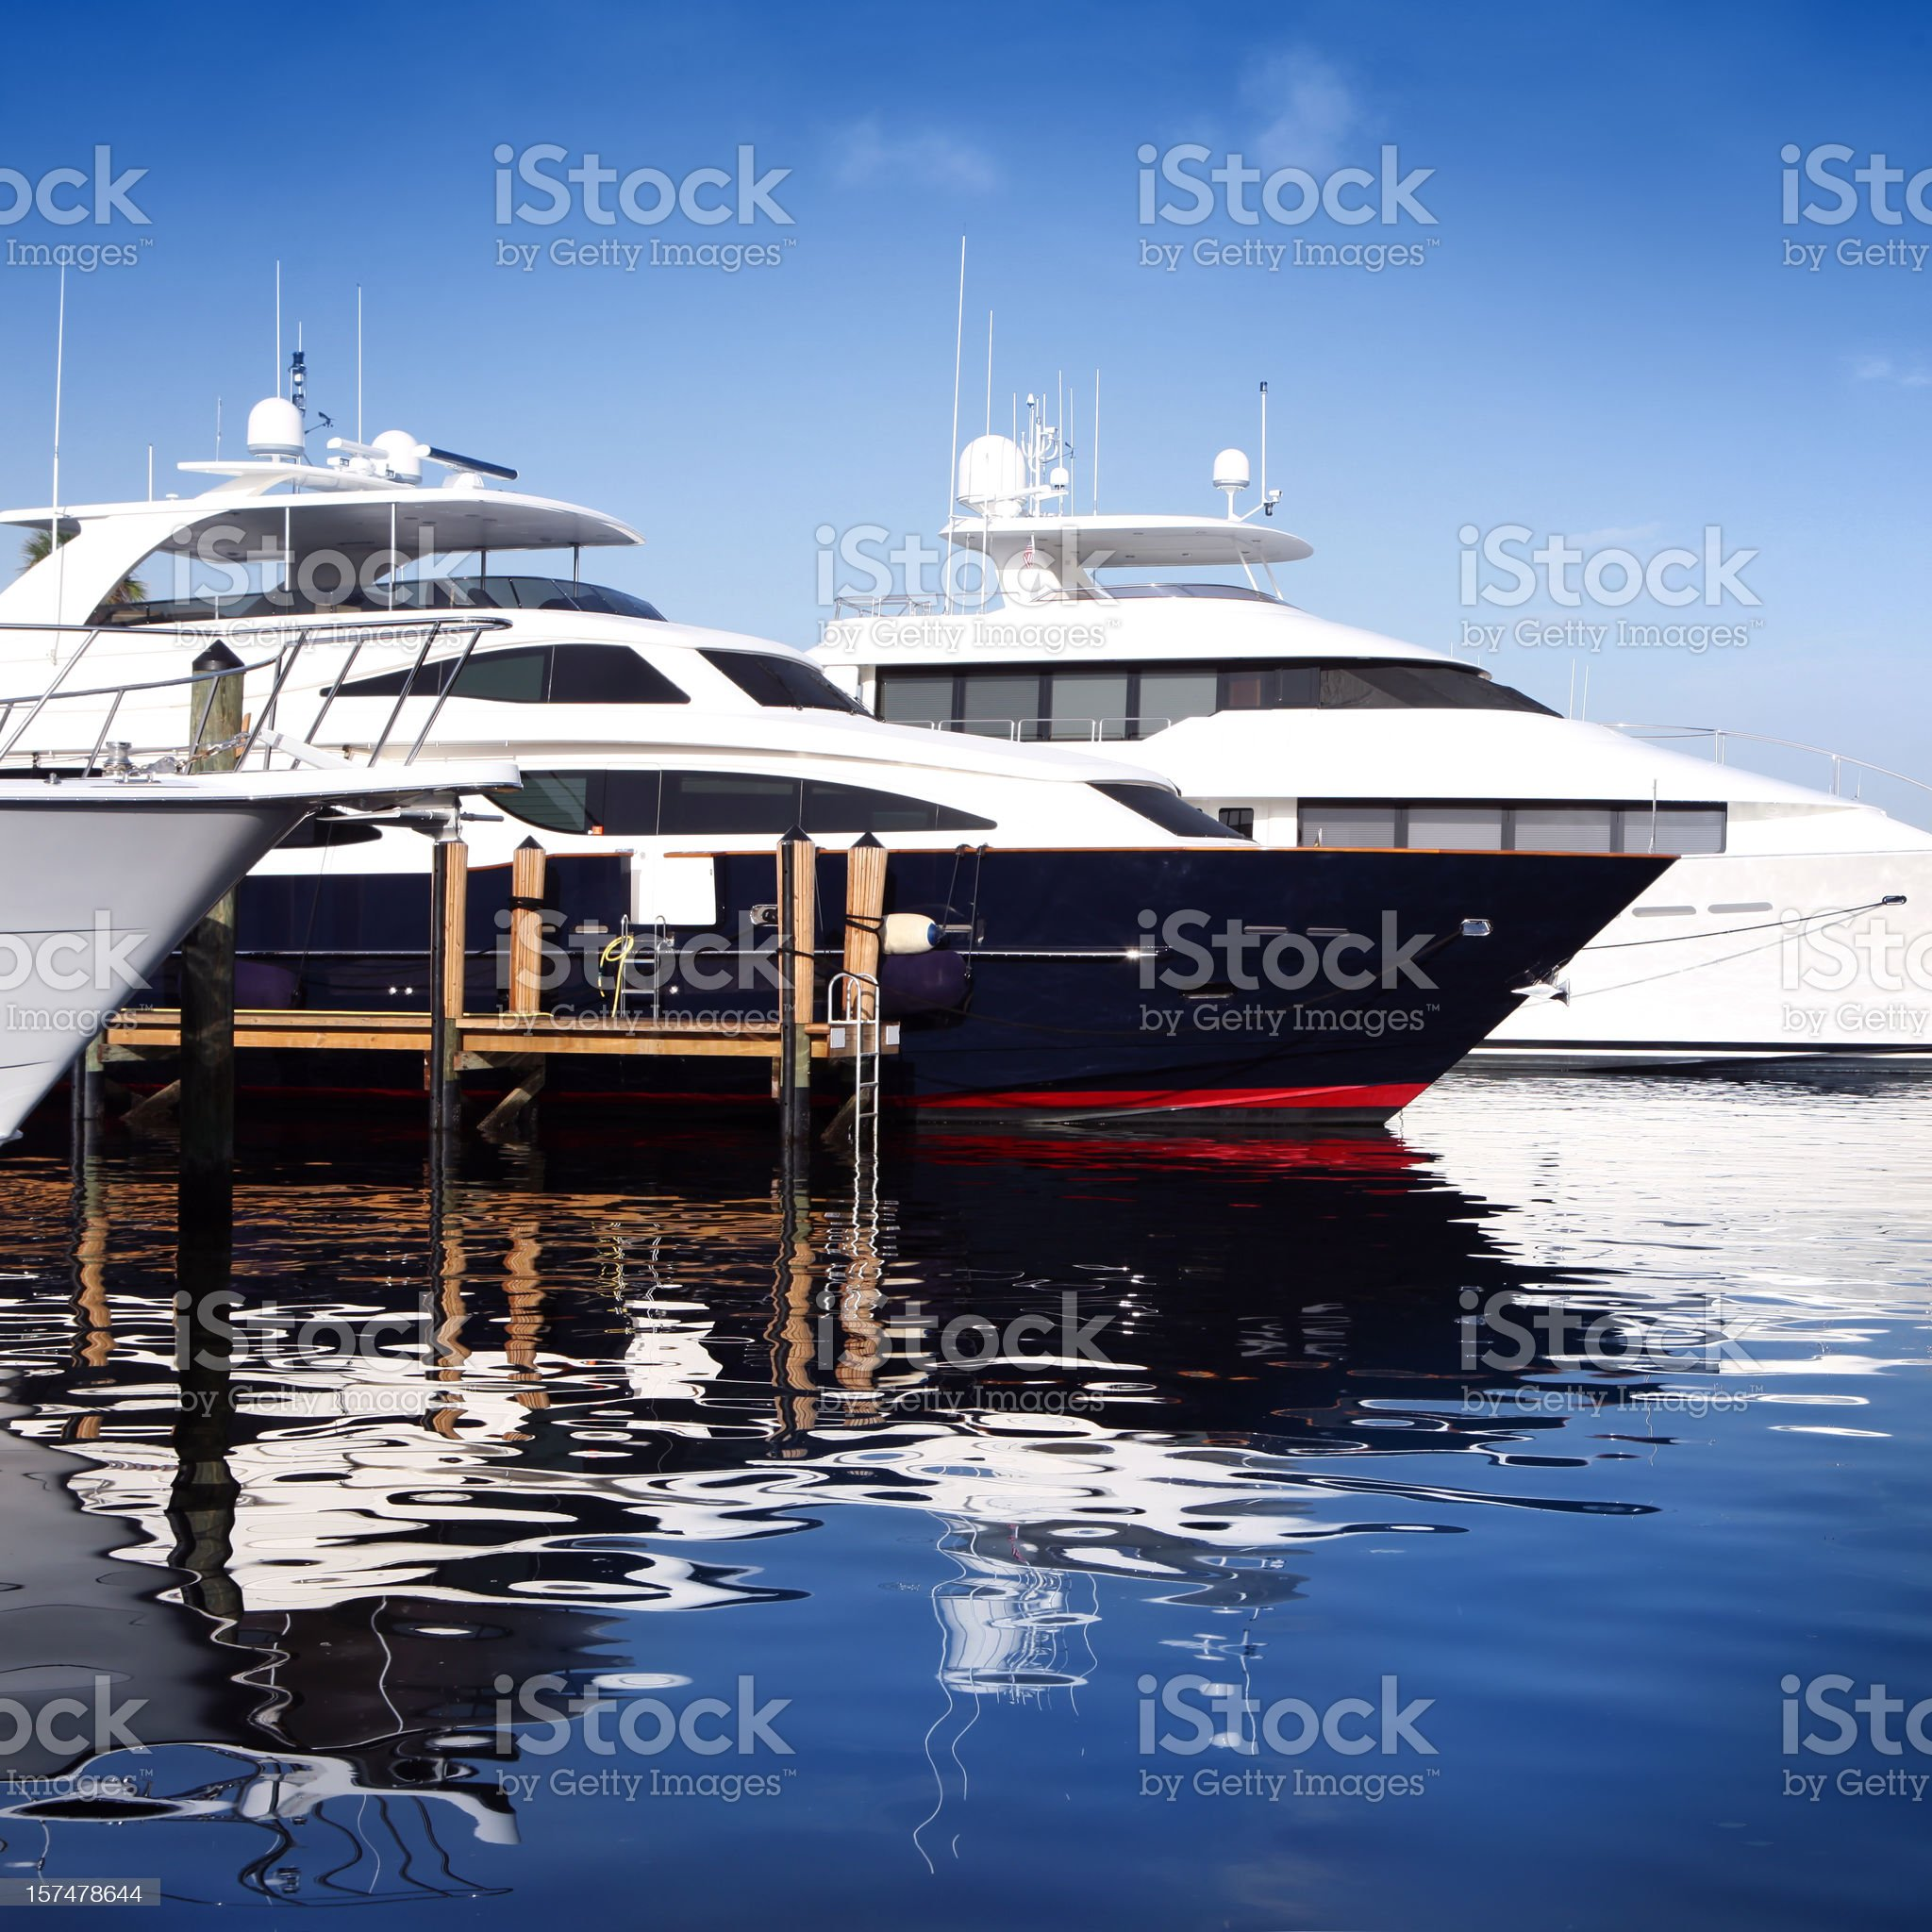 Detail of Yachts and Reflection royalty-free stock photo